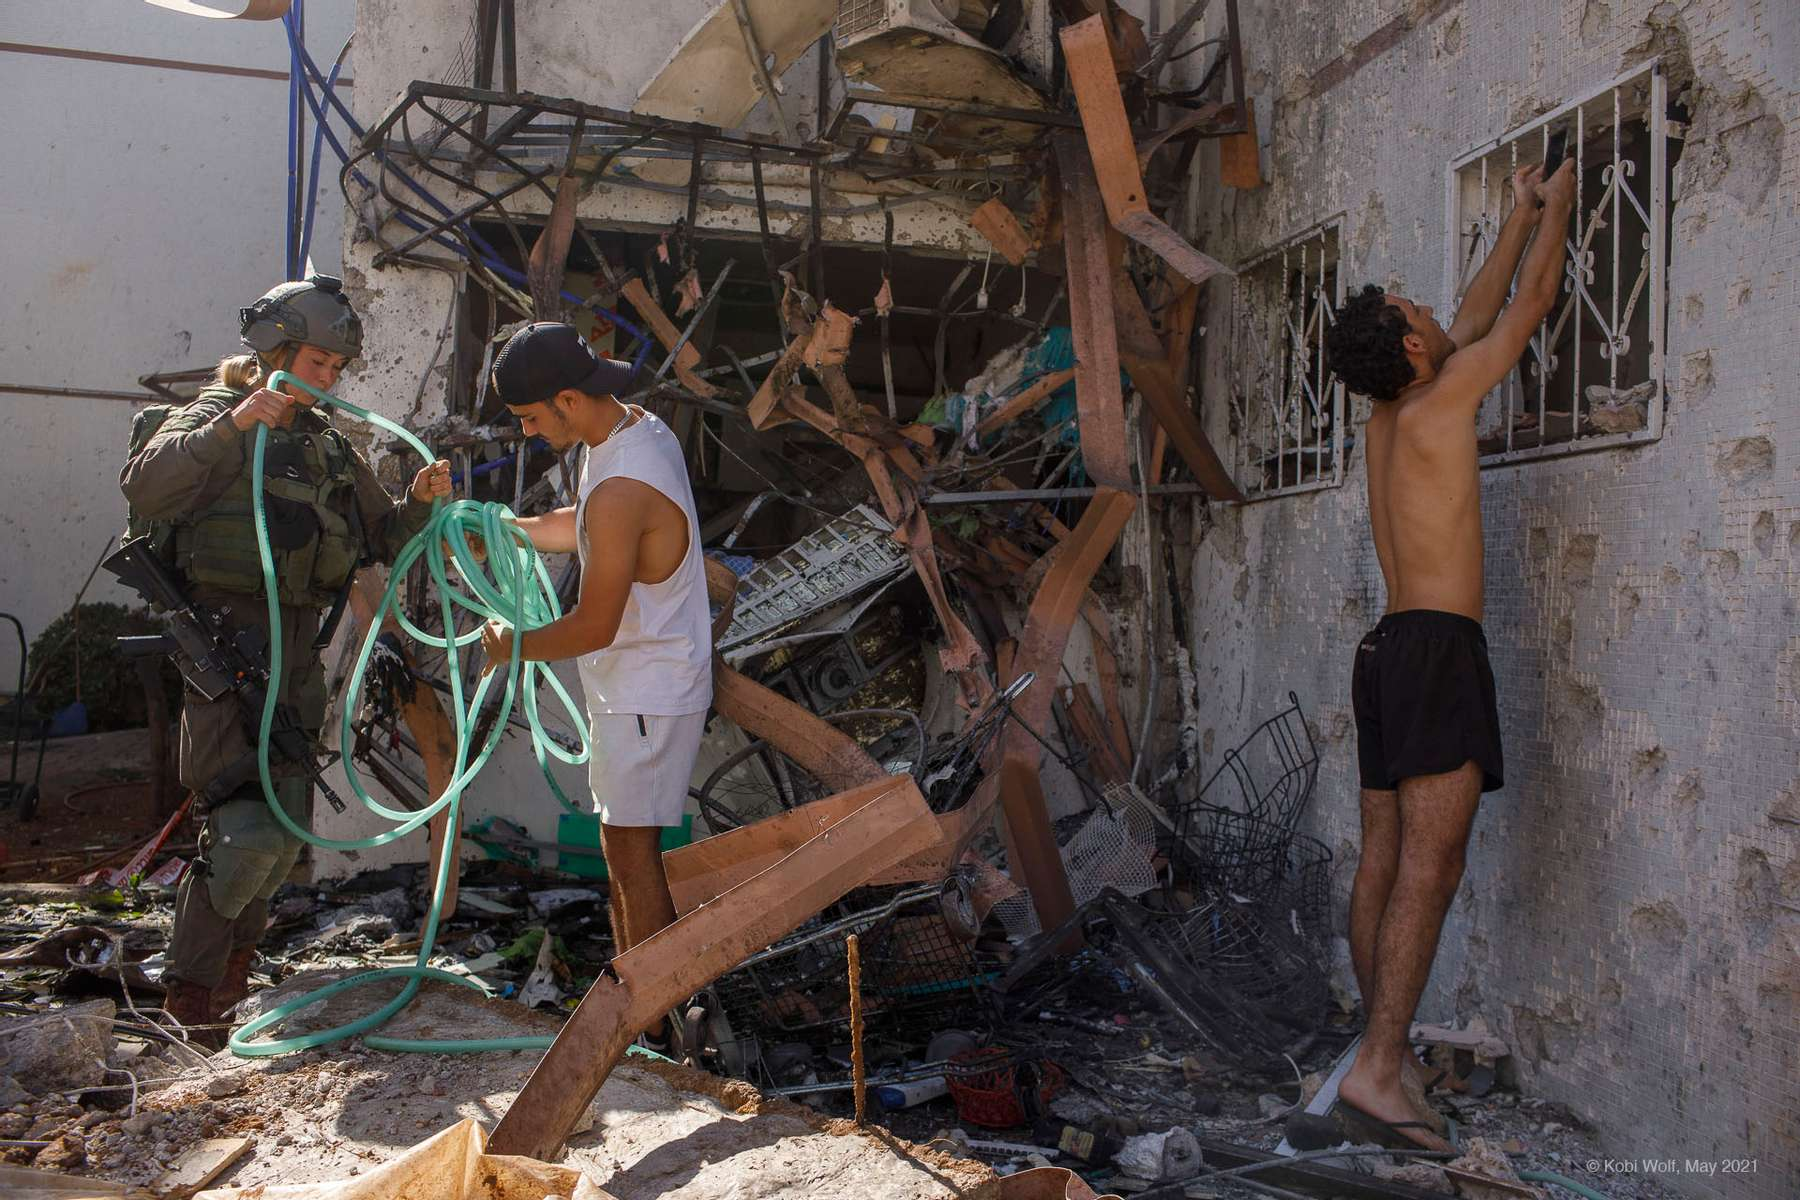 A building hit a direct hit by a rocket fired from Gaza in  Ashdod,  Israel  , May 17 2021 photographer: Kobi Wolf